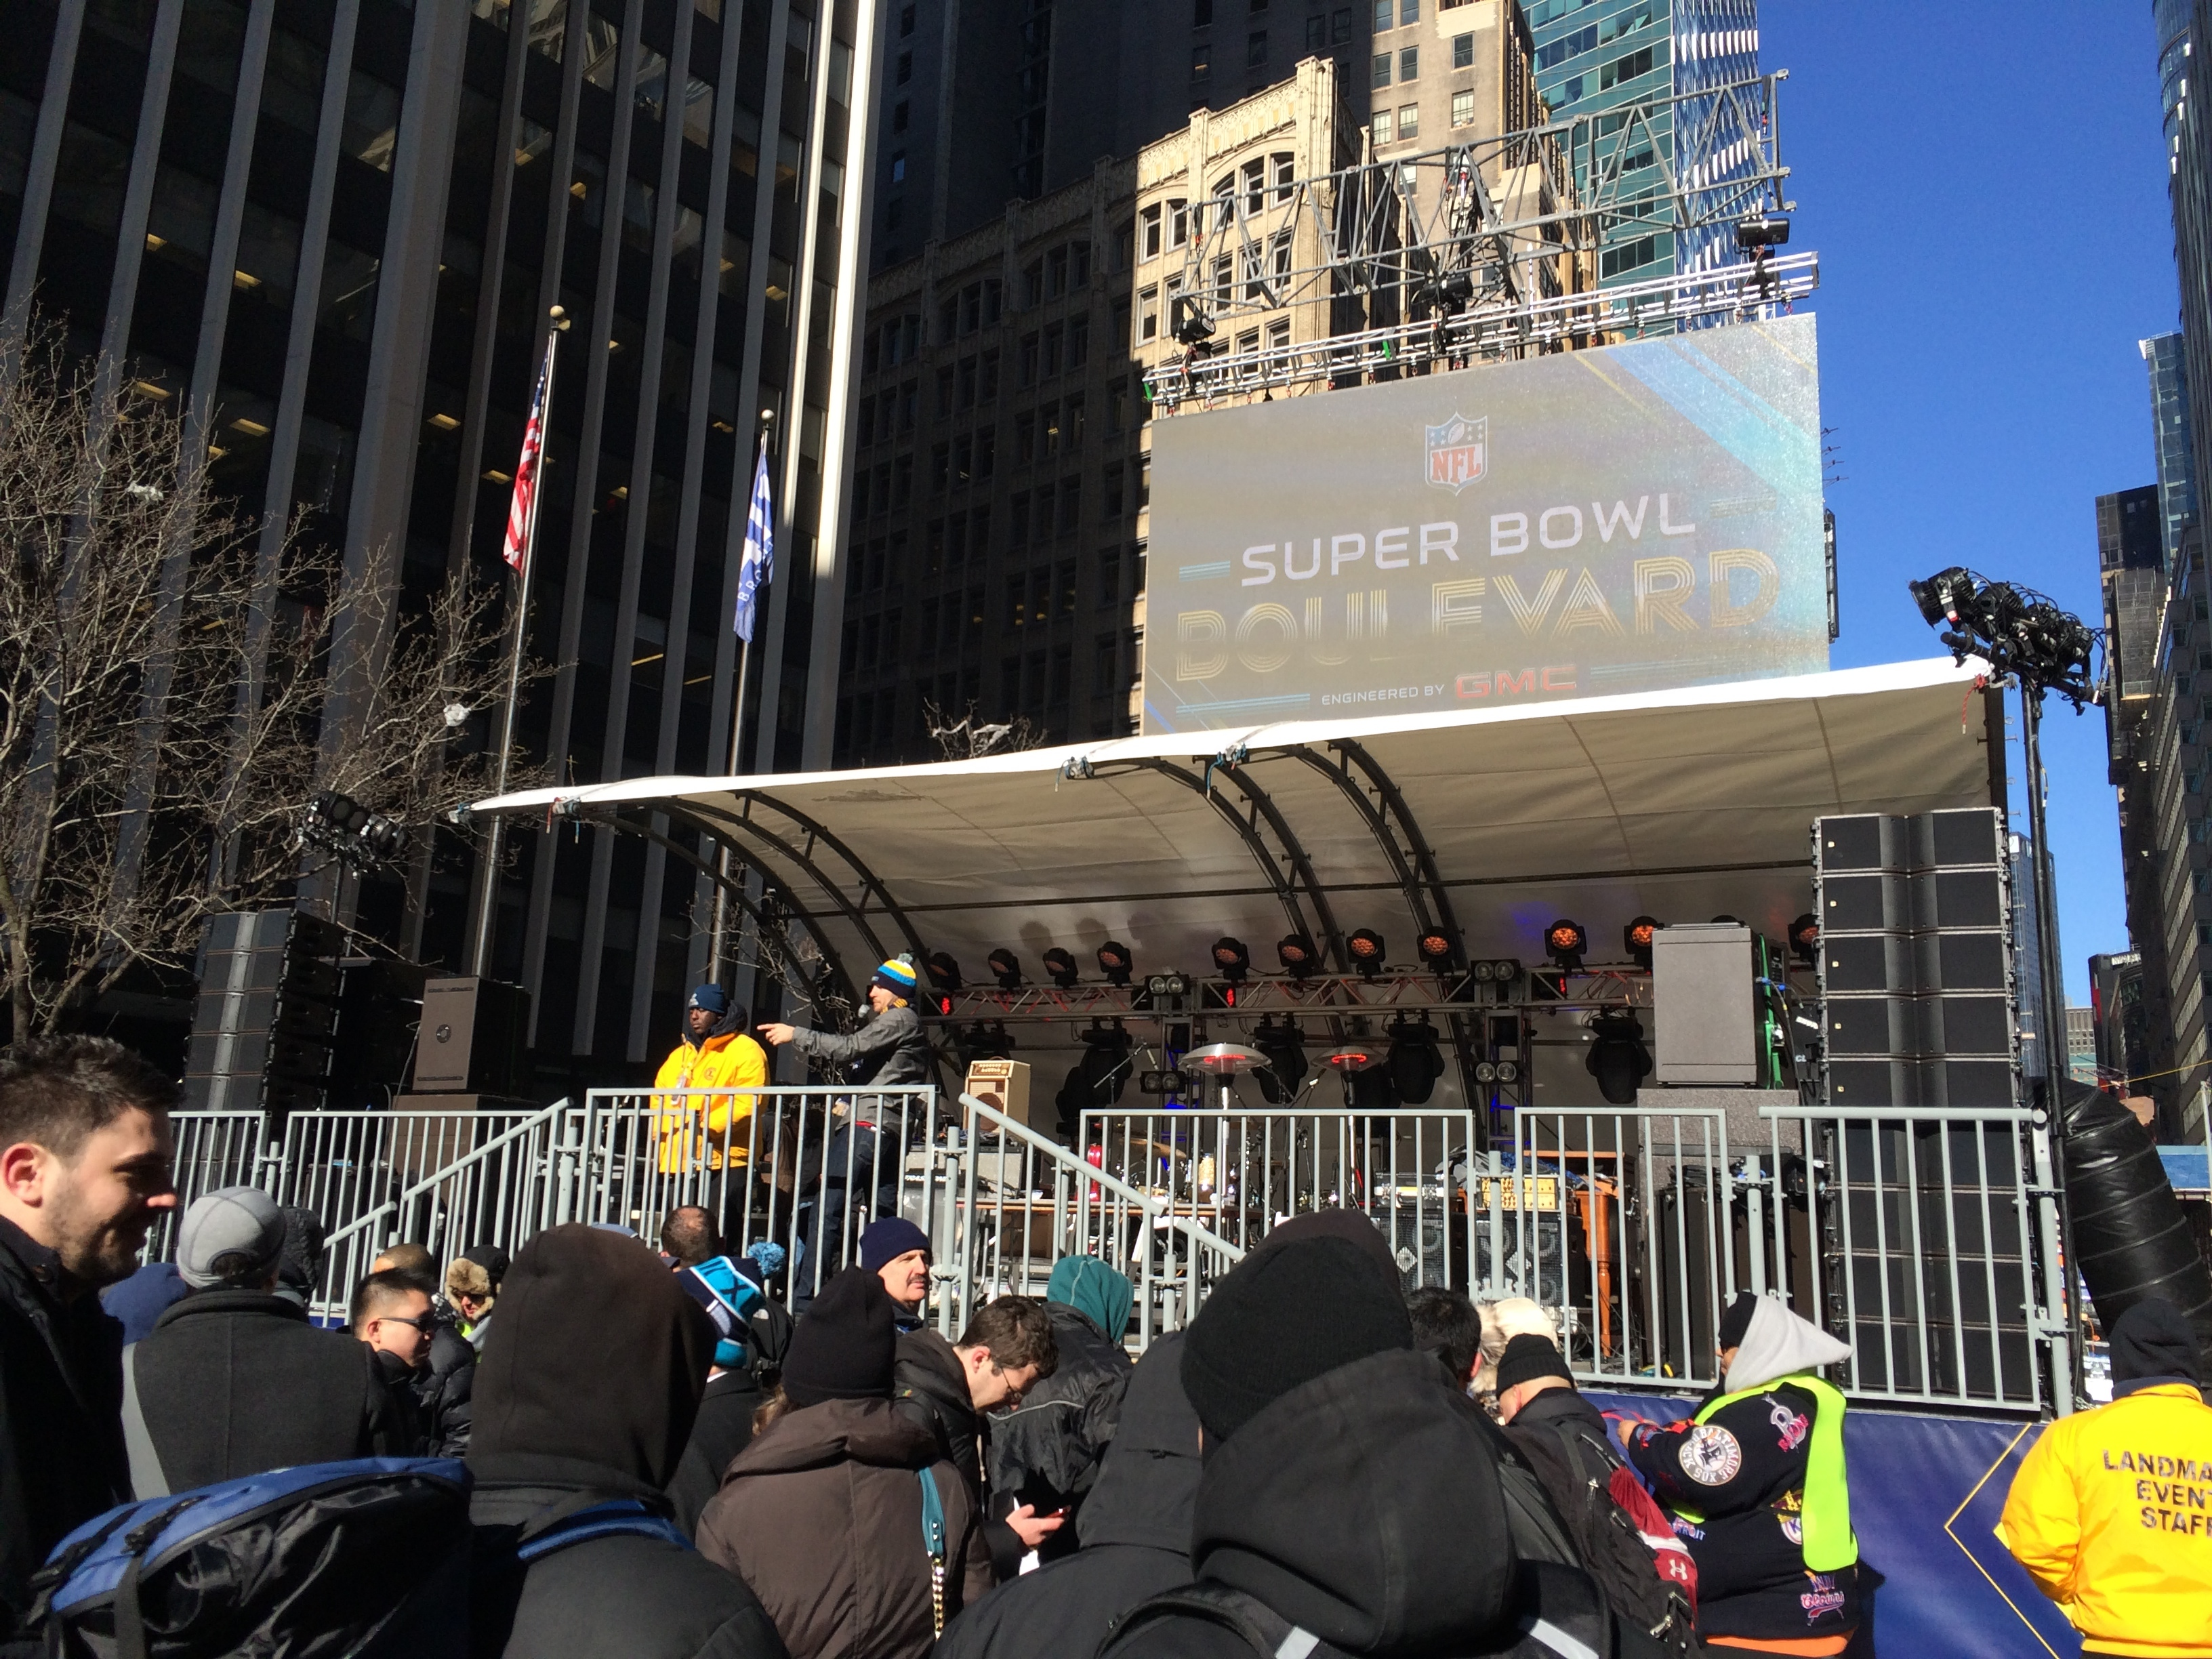 Super Bowl - NYC